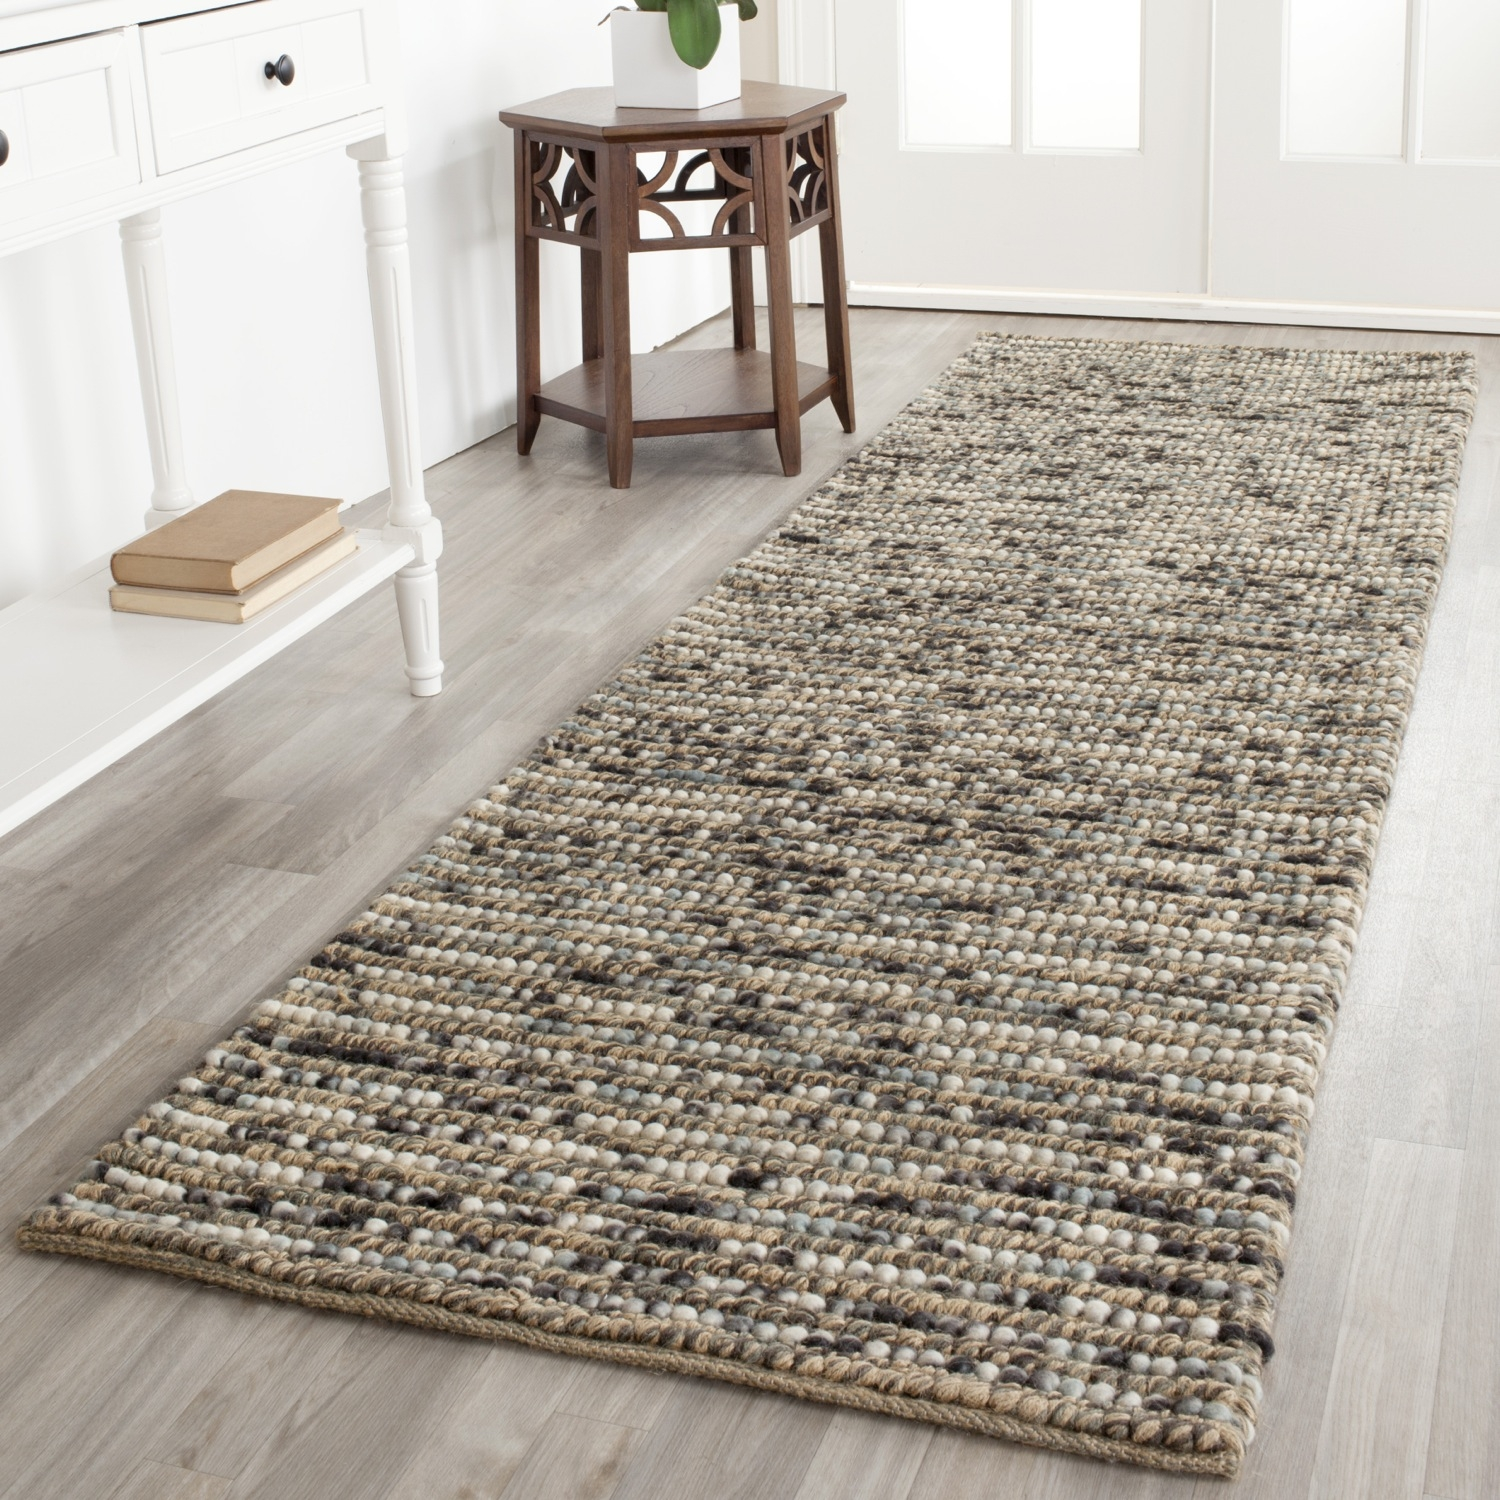 Wool Jute Area Rugs Roselawnlutheran For Natural Wool Area Rugs (#13 of 15)